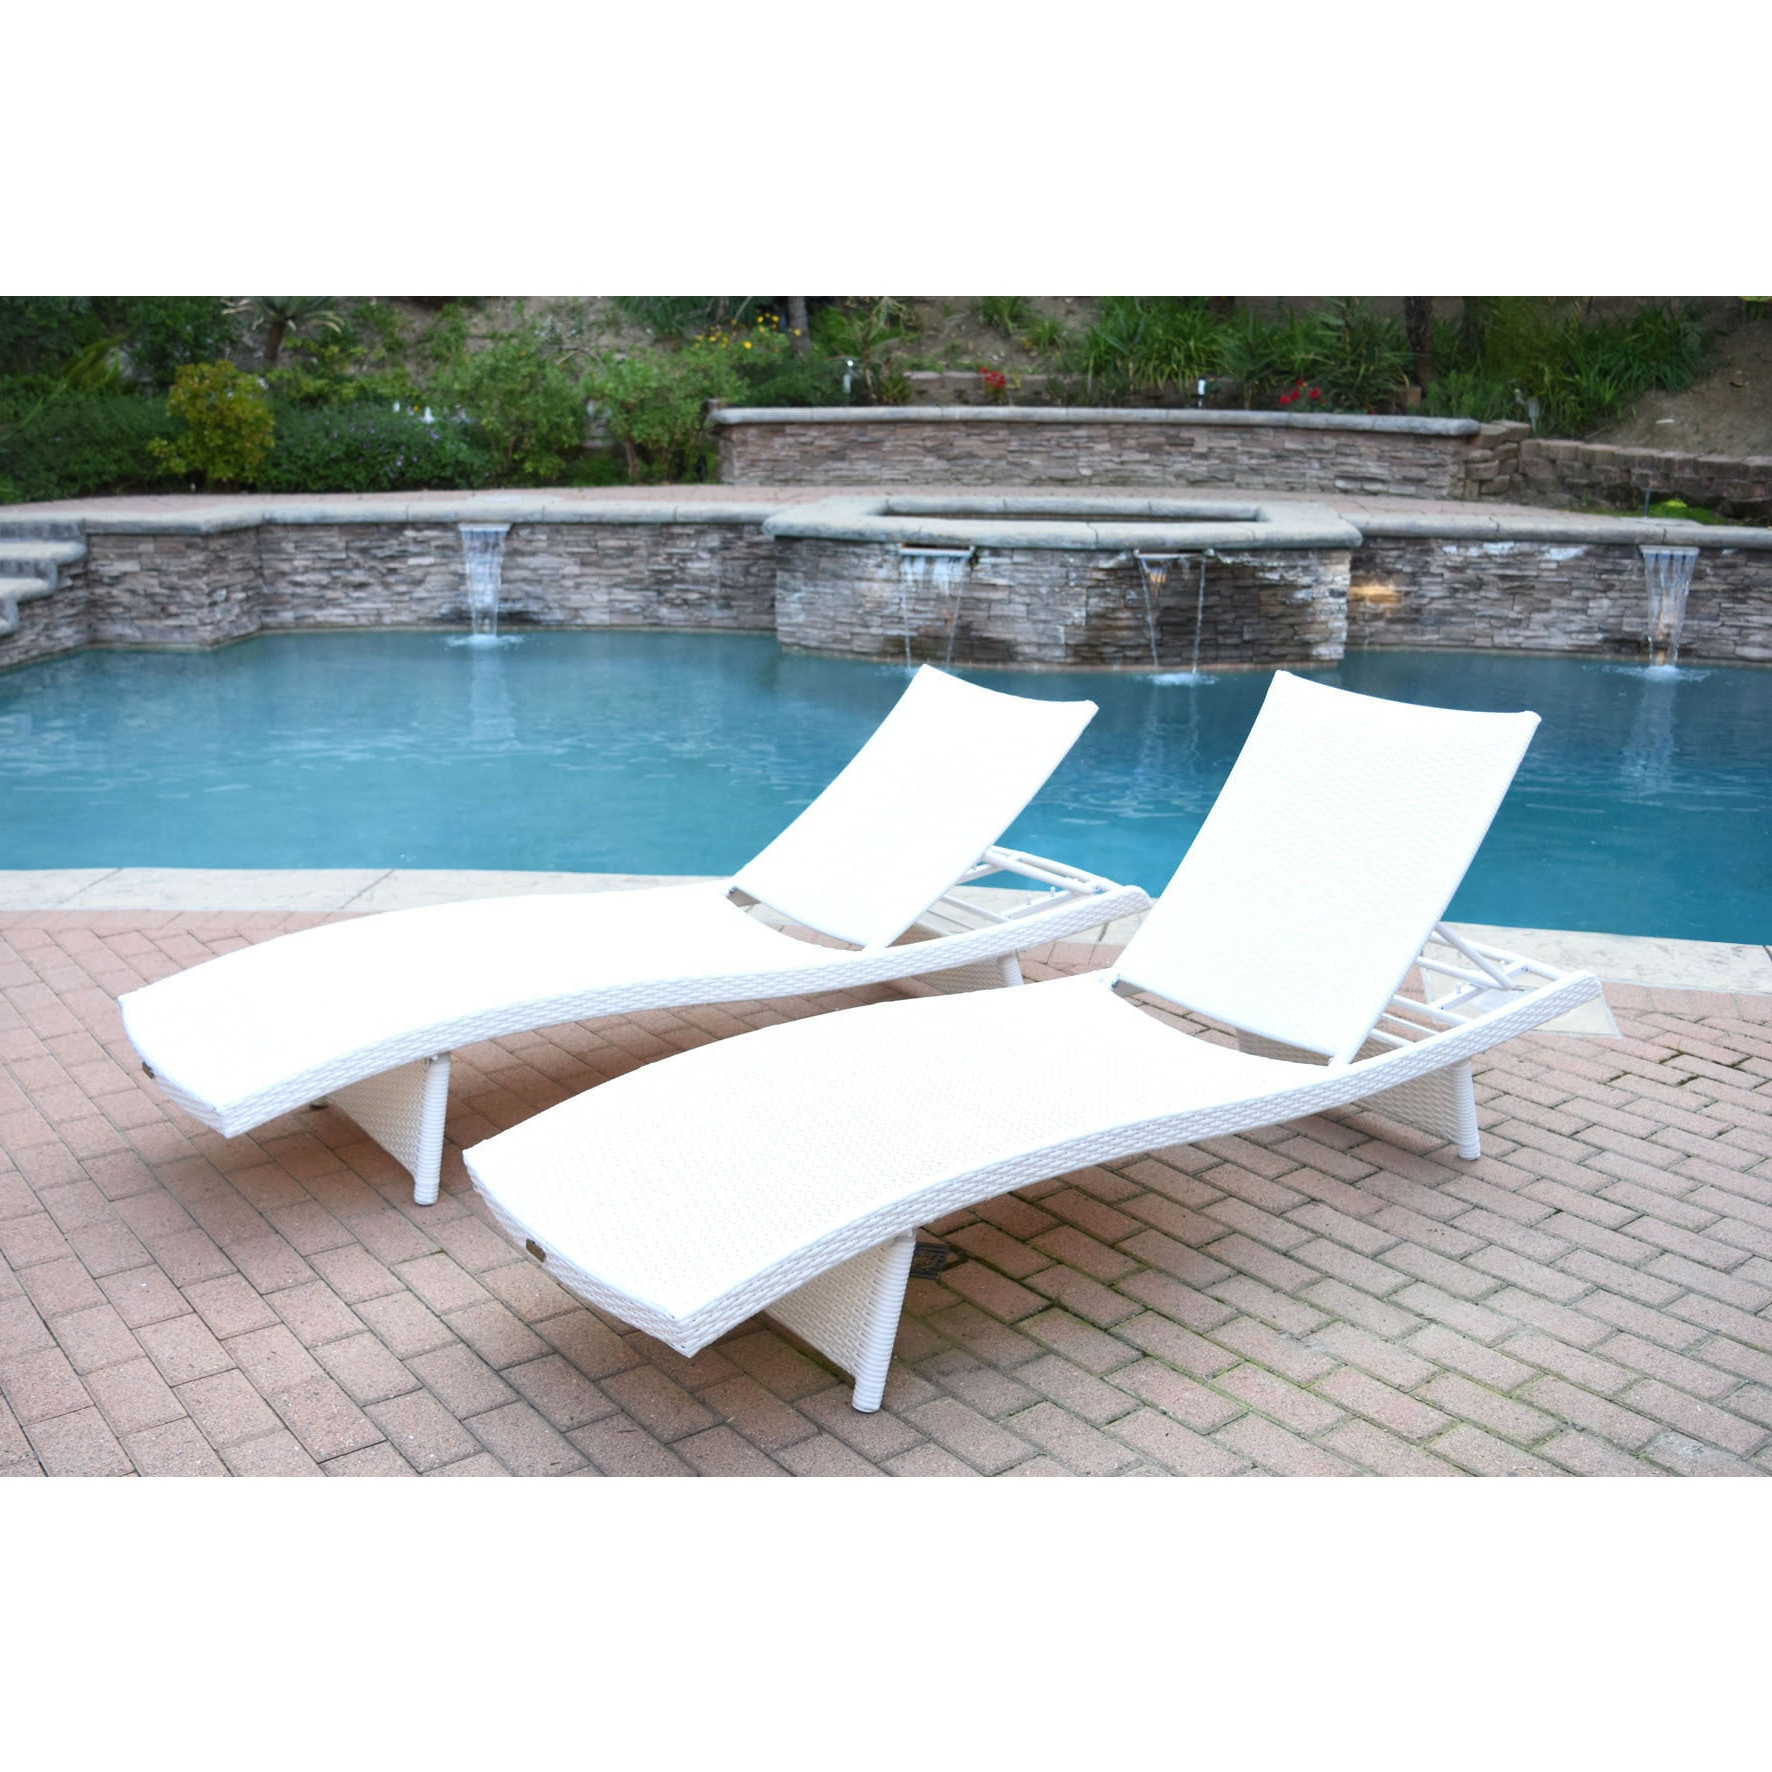 White Wicker Adjustable Chaise Lounger With Cushions (Set Of 2) With Regard To Popular White Wicker Adjustable Chaise Loungers With Cushions (View 18 of 25)